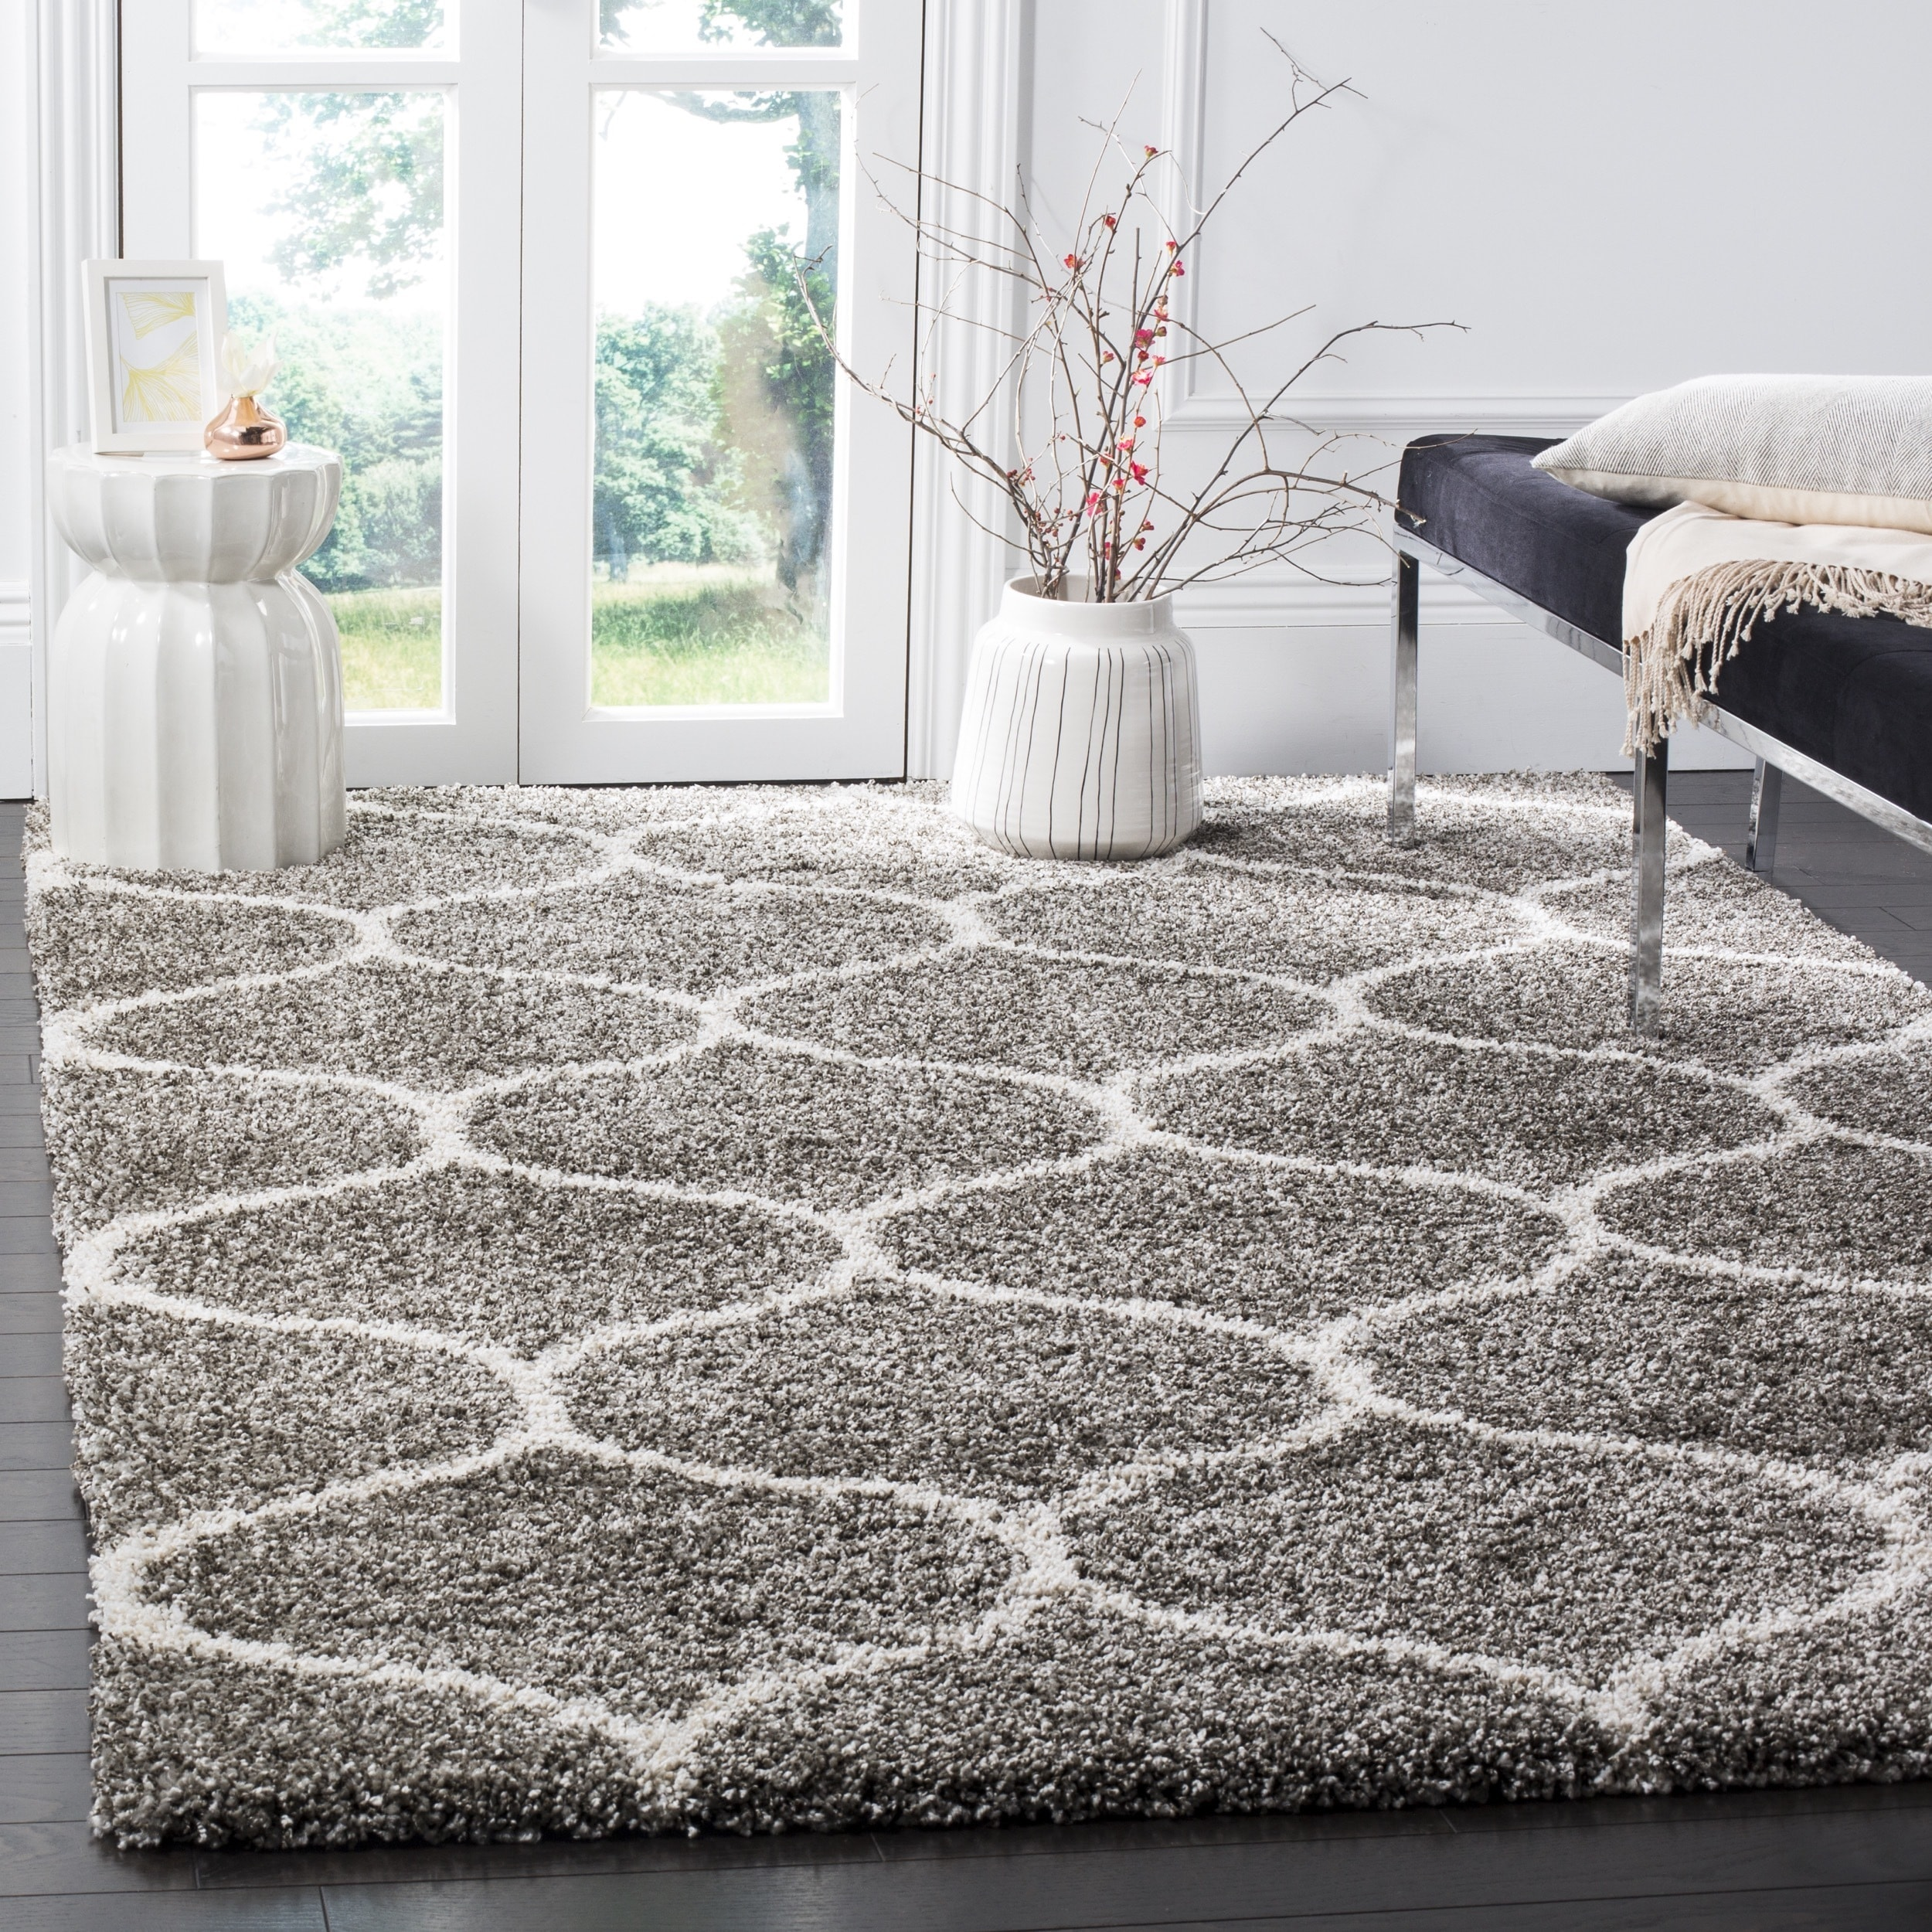 ideas modern designs g creative rug rugs square